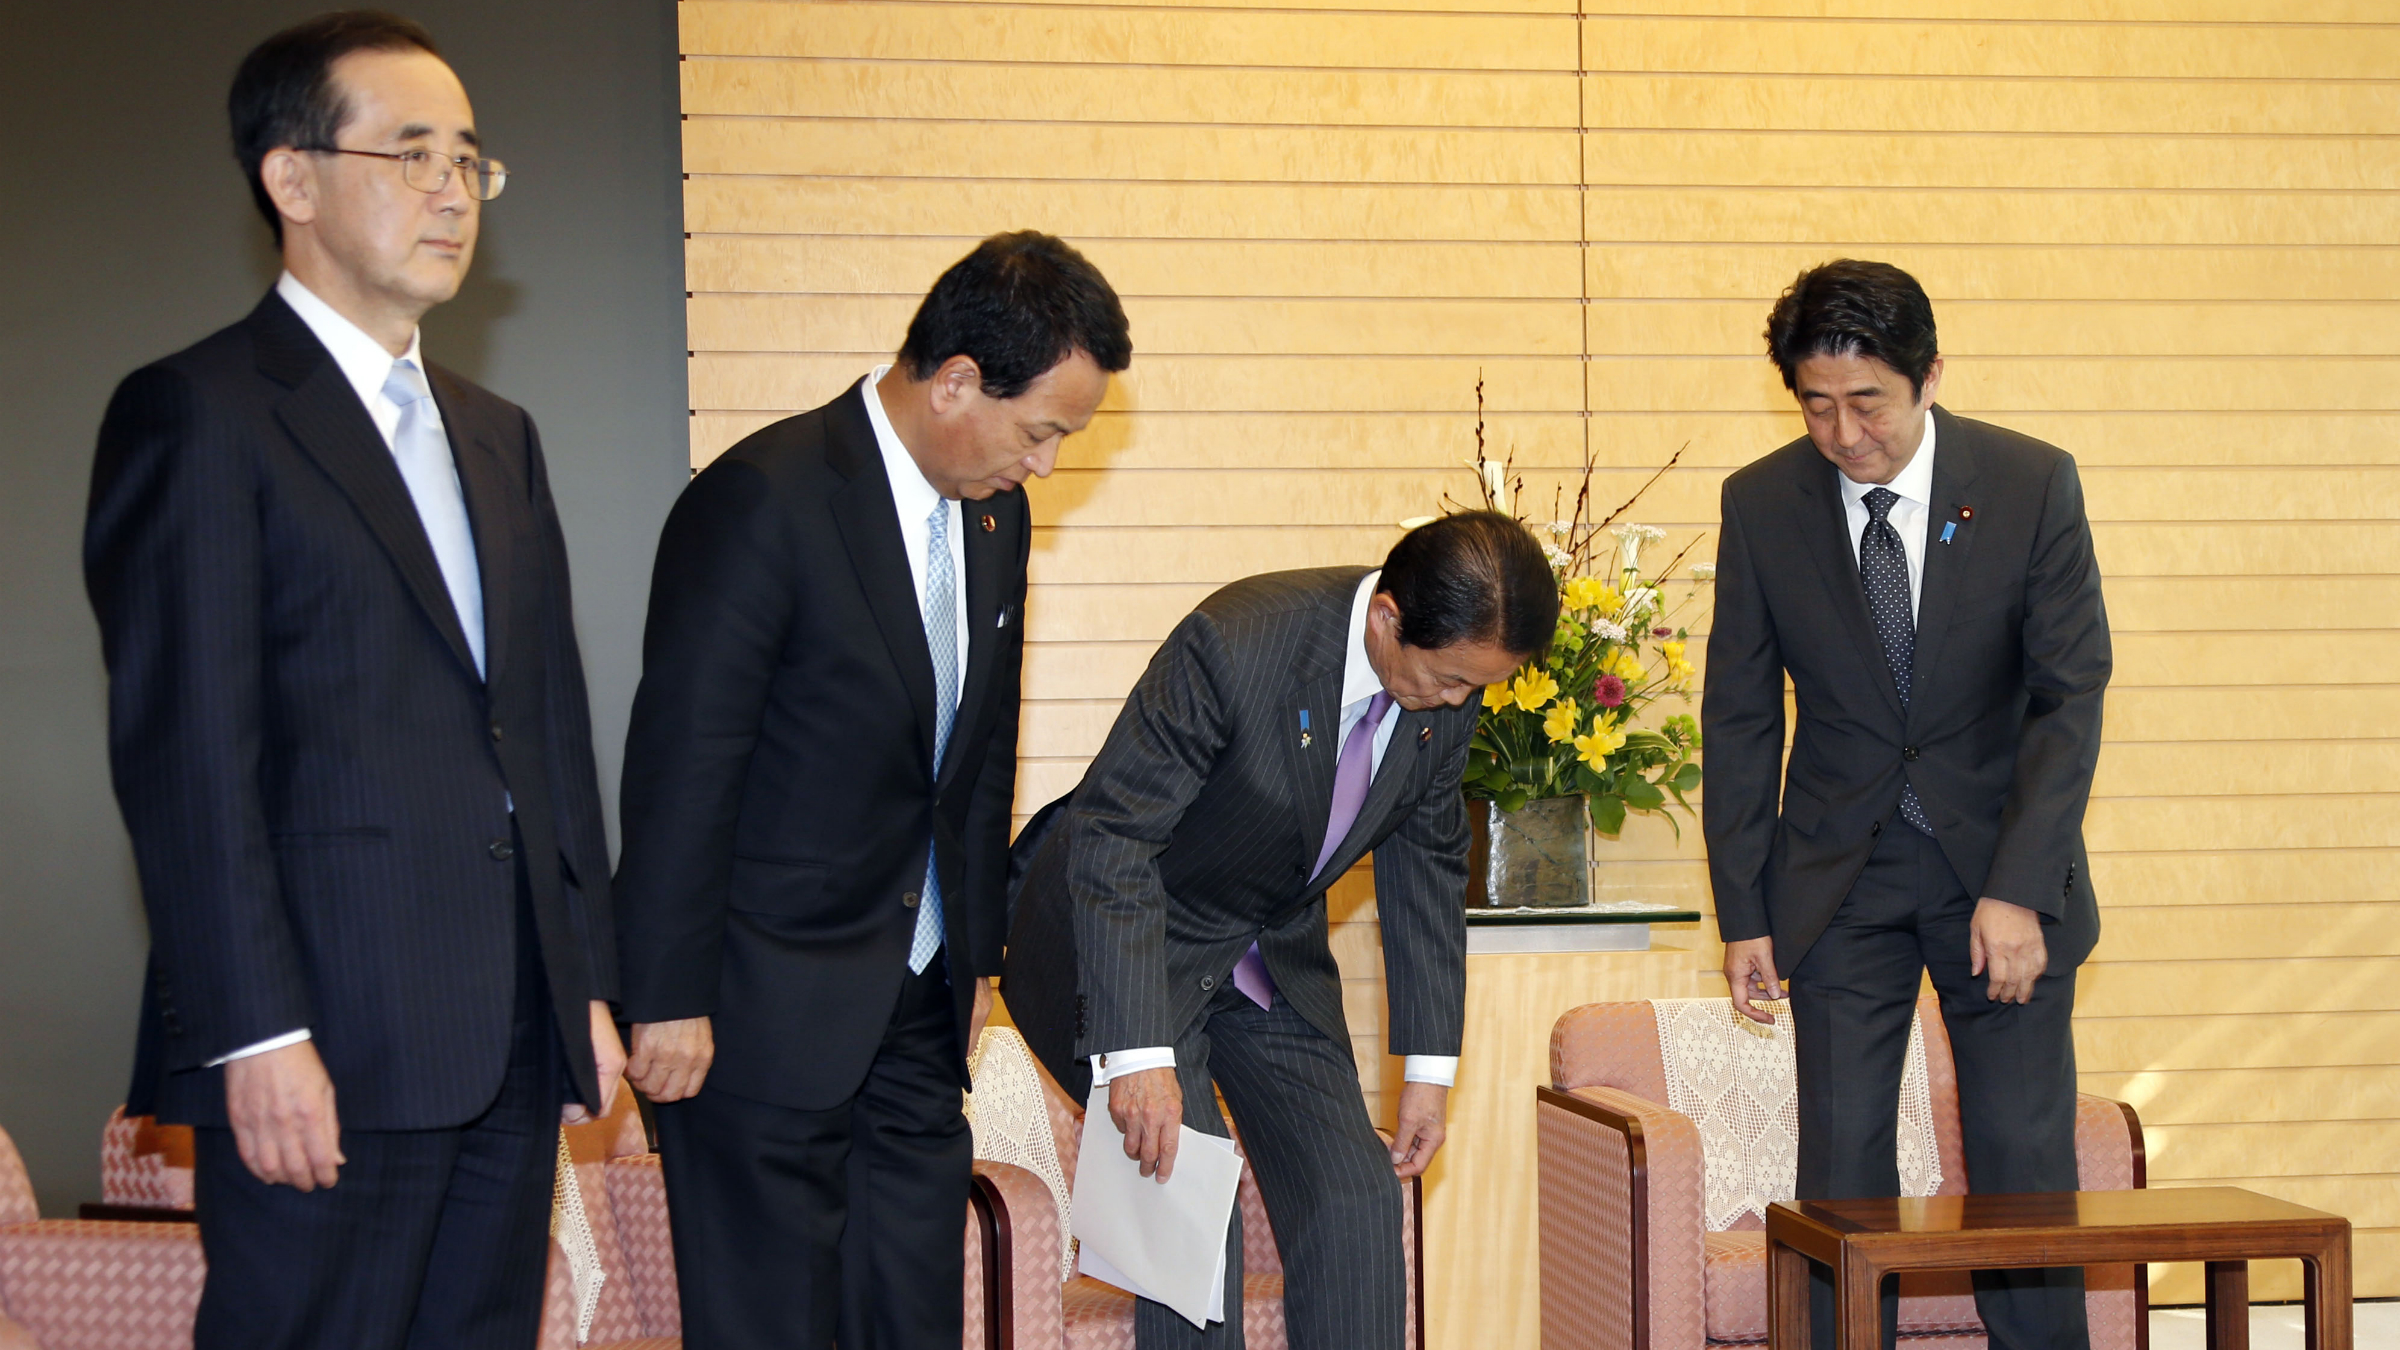 """Japanese Prime Minister Shinzo Abe, right, takes a seat as he arrives for meeting with Finance Minister Taro Aso, center, Economics Minister Akira Amari, second from left, and Bank of Japan Gov Masaaki Shirakawa, at the prime minister's official residence in Tokyo, Tuesday, Jan. 22, 2013. Japan's Prime Minister Shinzo Abe declared a """"monetary regime change"""" Tuesday as the central bank bowed to government pressure, setting a 2 percent inflation target aimed at helping the country emerge from its prolonged bout of deflation."""